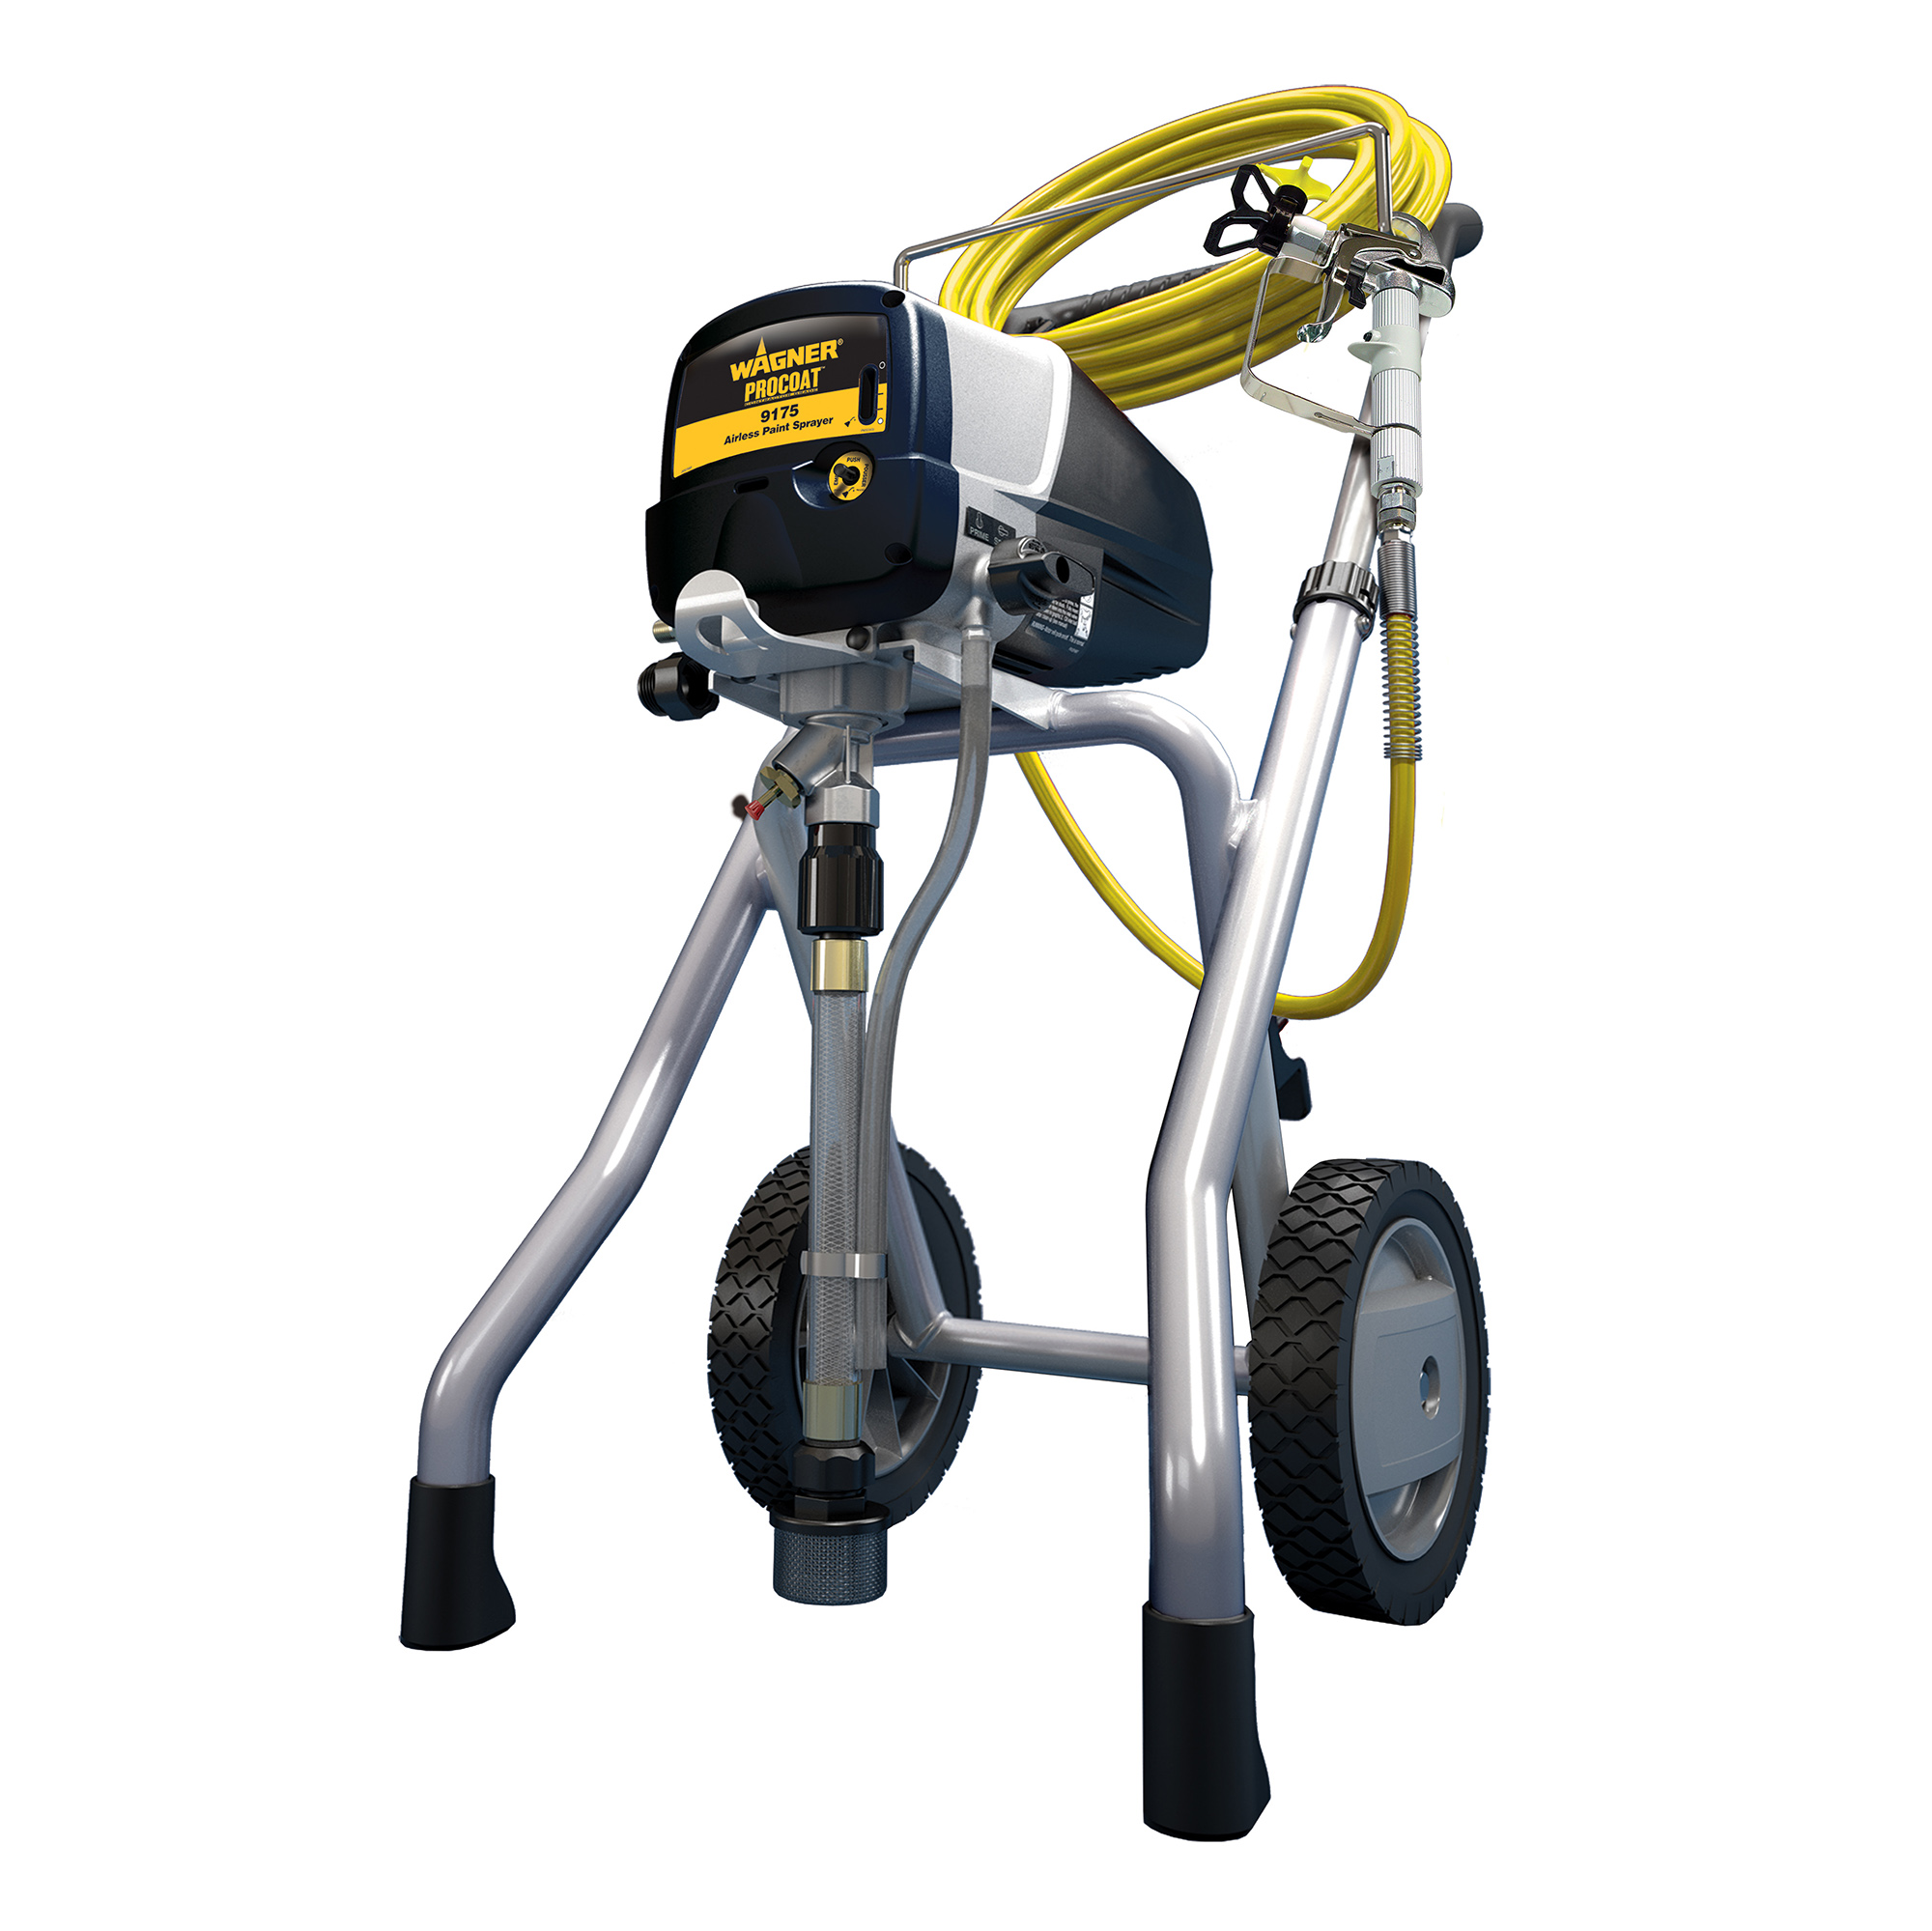 wagner procoat 9175 airless piston pump 3 4 hp 15 amp 3000 psi paint sprayer 24964182091 ebay. Black Bedroom Furniture Sets. Home Design Ideas